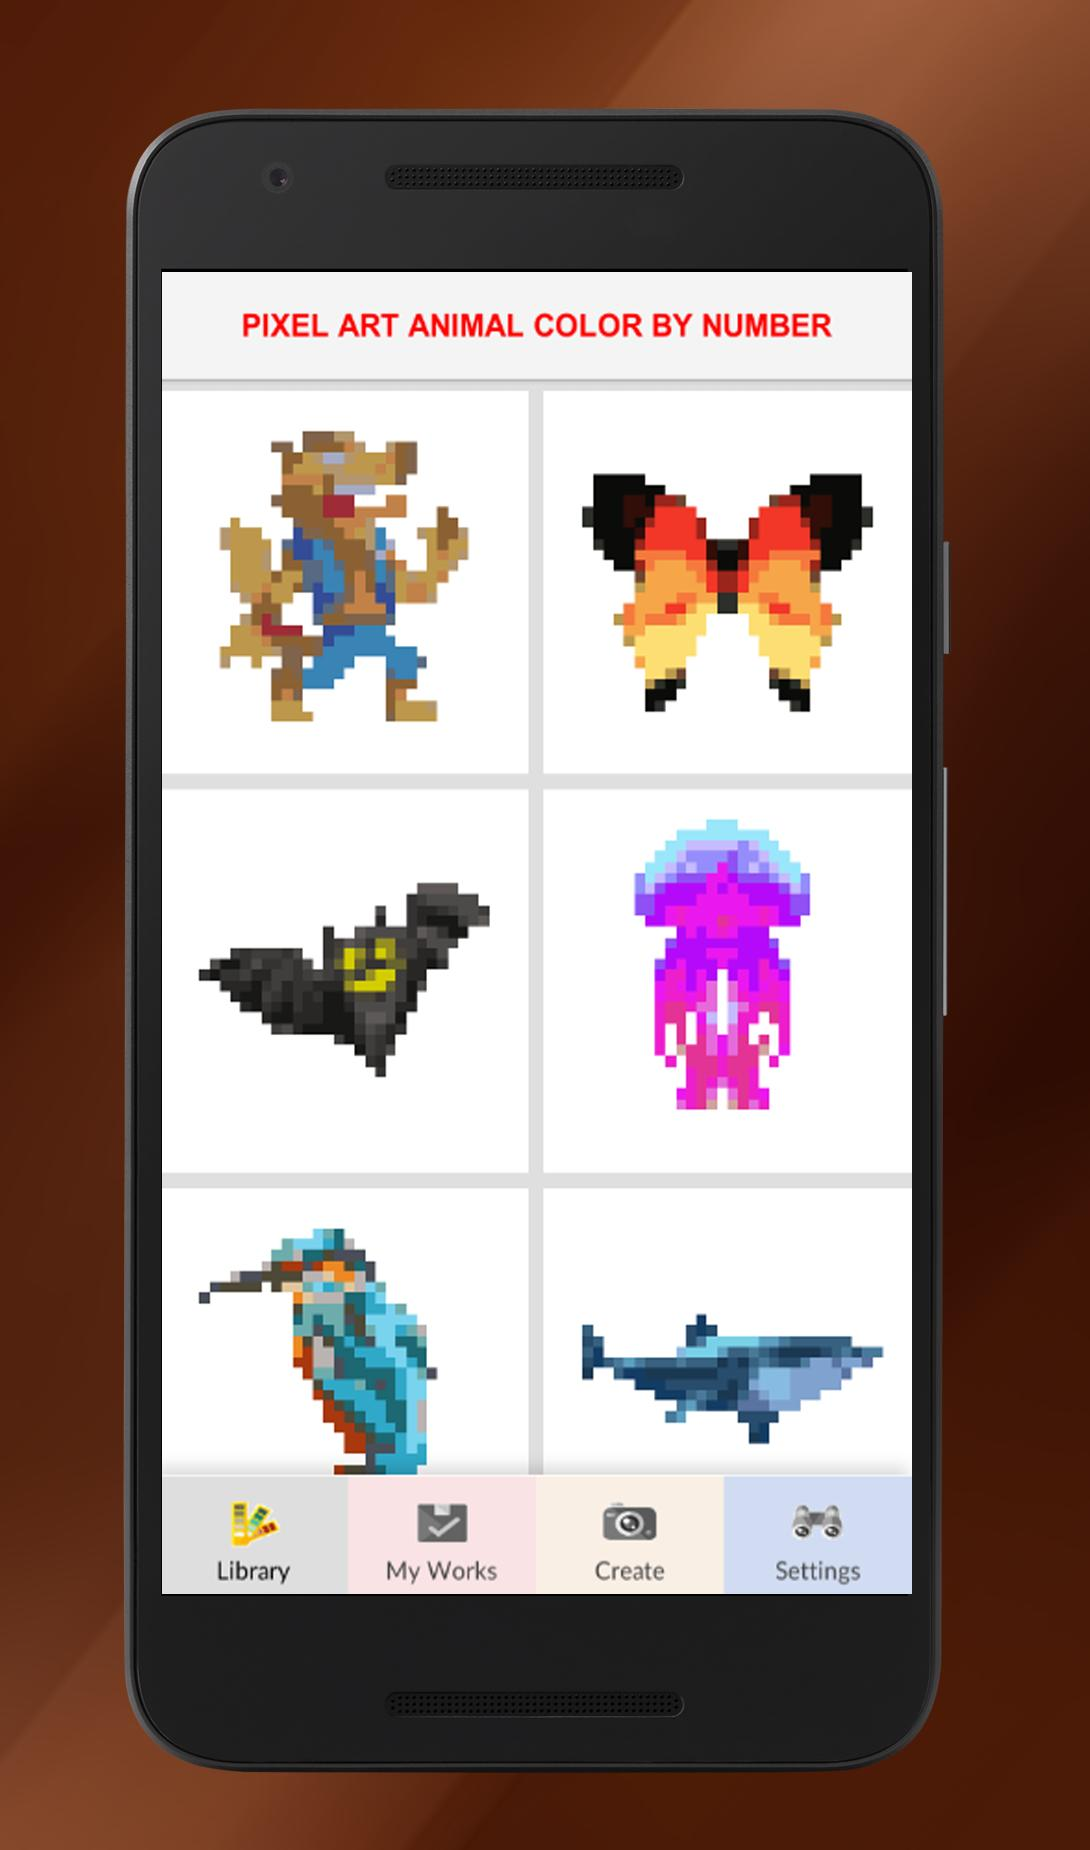 Pixel Art Animal Color By Number For Android Apk Download